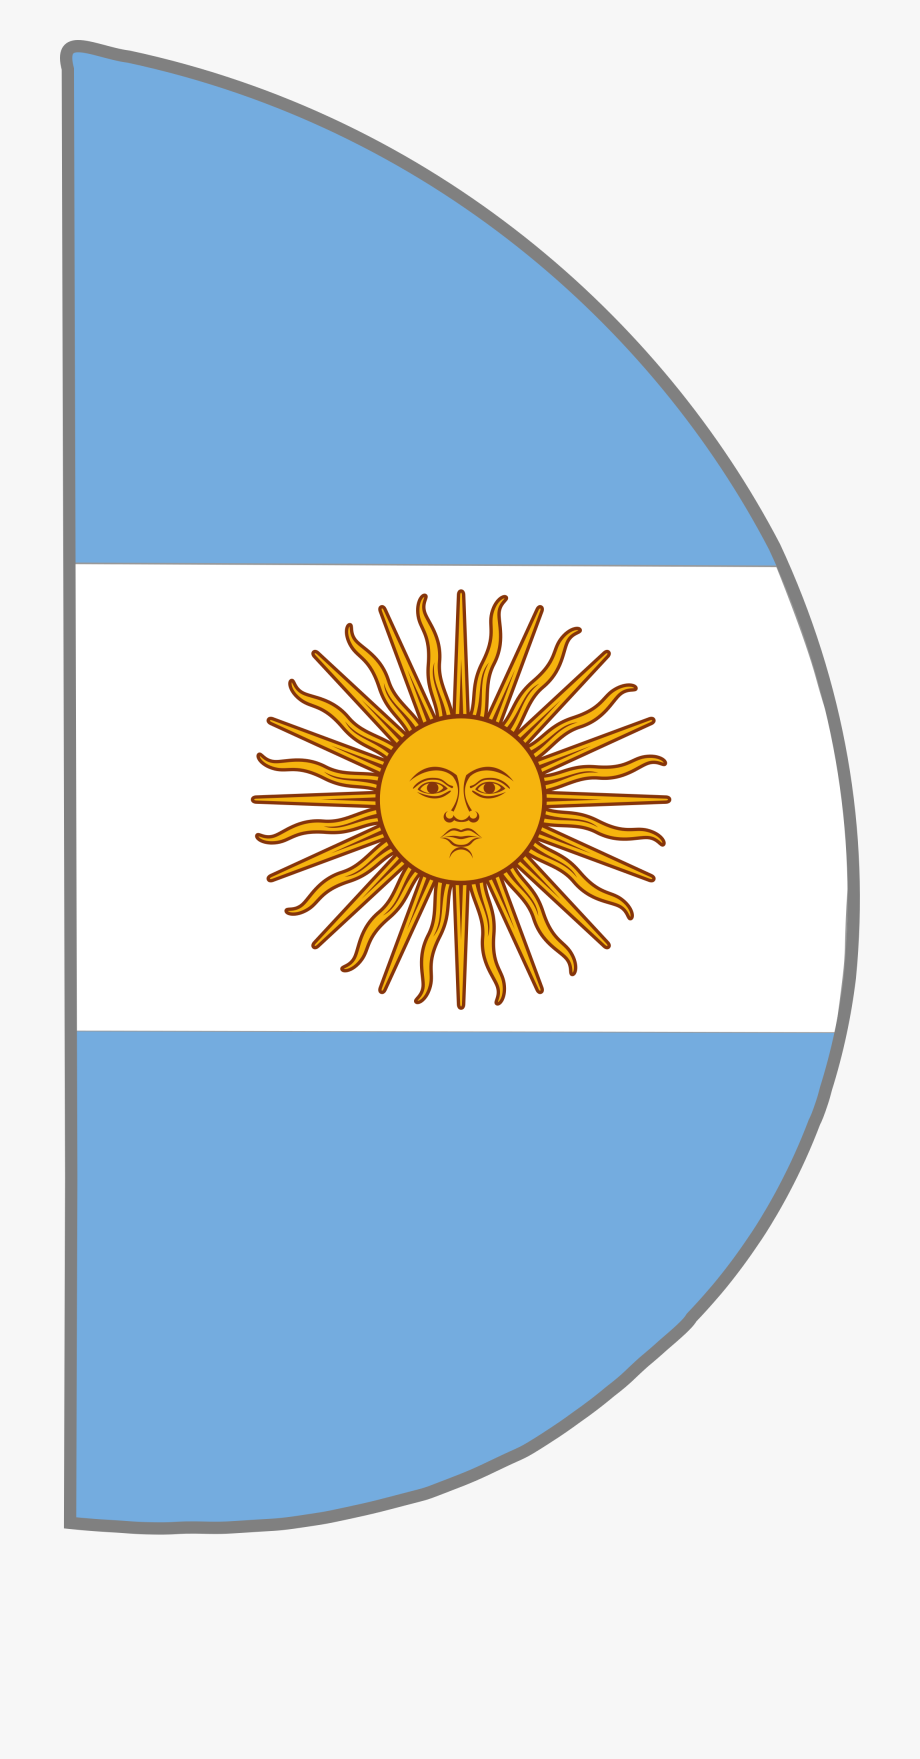 Bandera Argentina Png Clipart For Our Users.